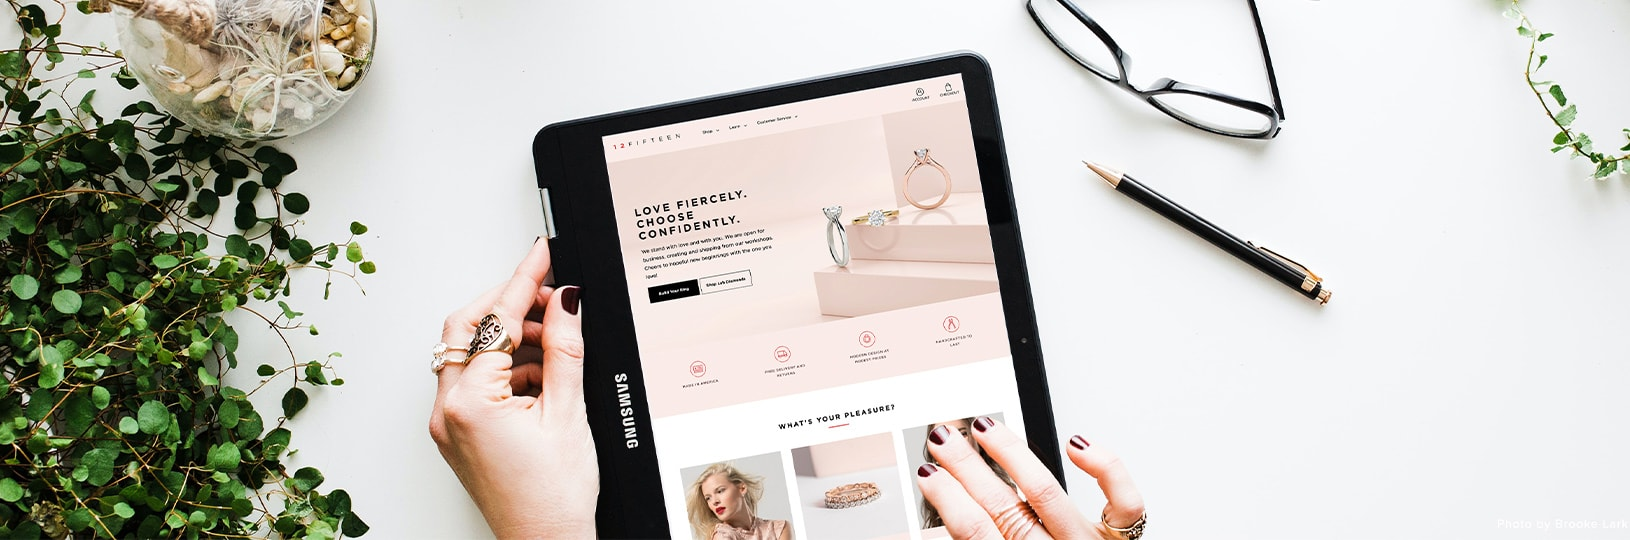 A person browsing engagement rings on their tablet